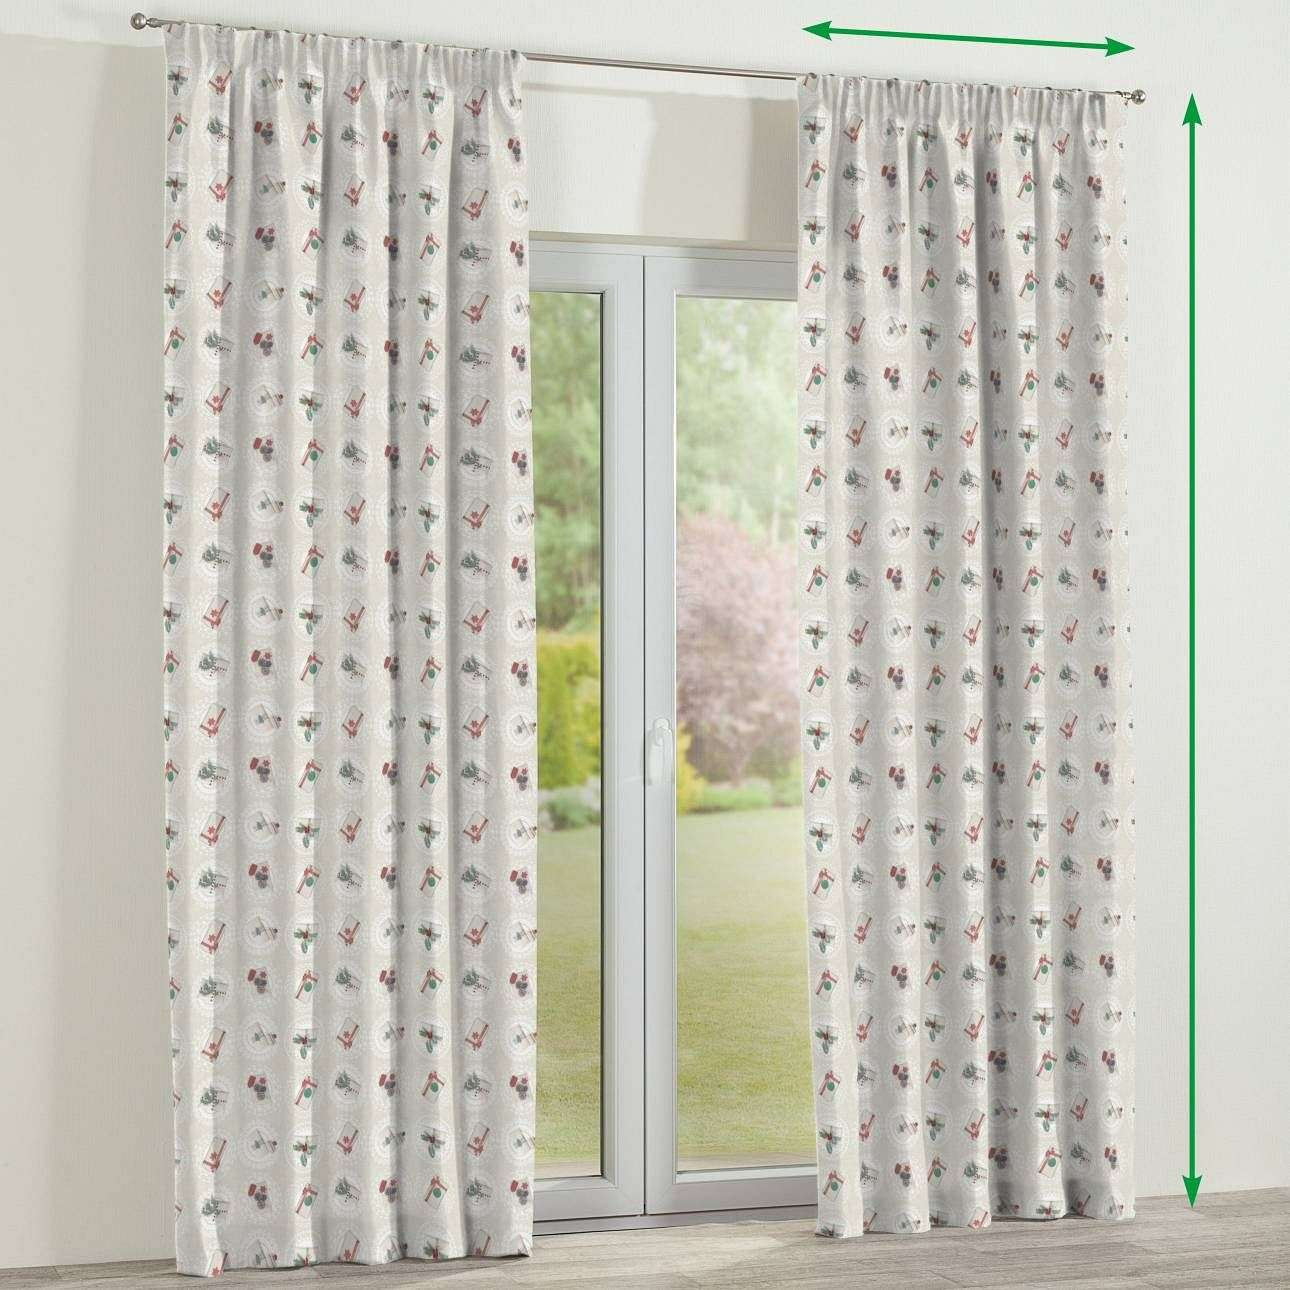 Pencil pleat curtains in collection Christmas, fabric: 629-30